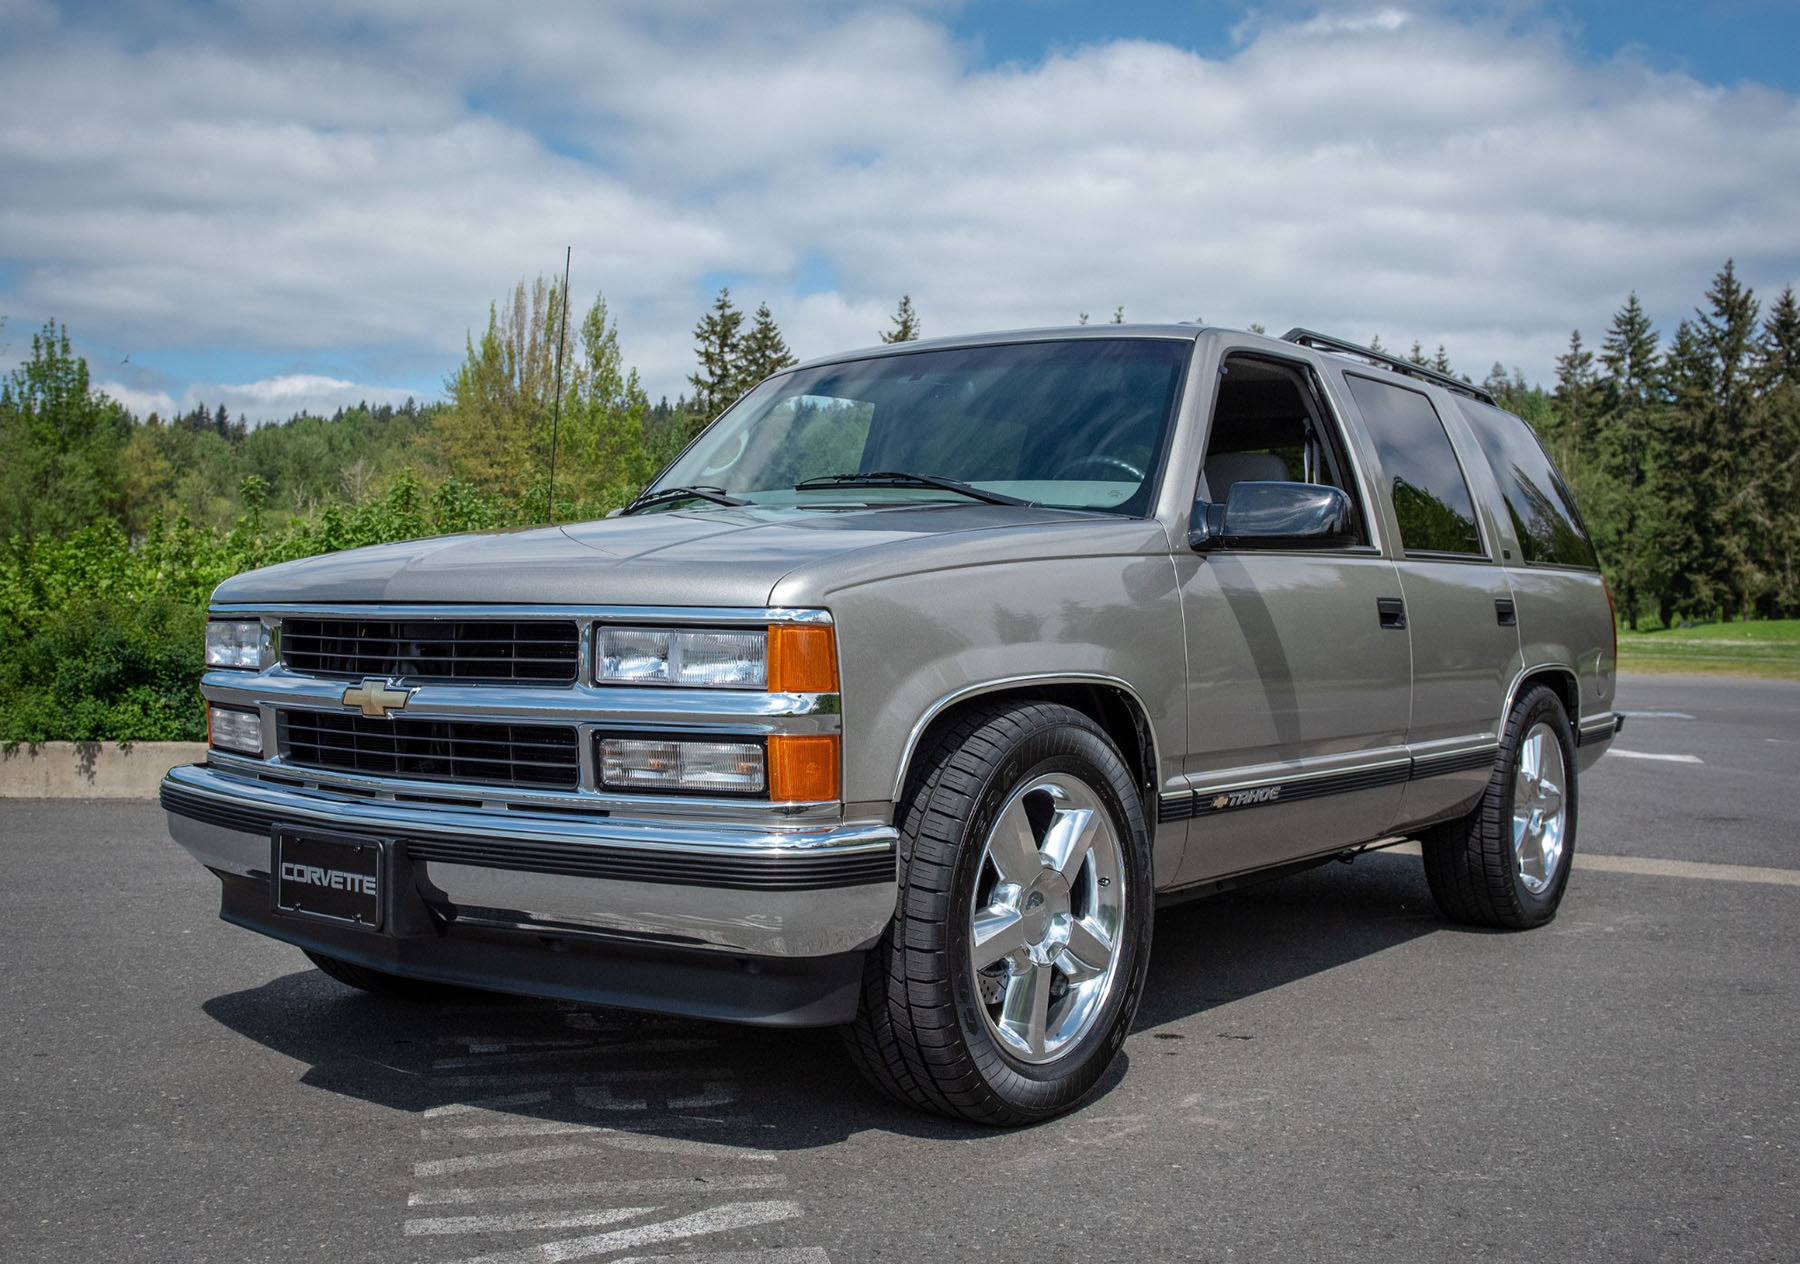 For Sale 1998 Tahoe 4wd With A Supercharged Ls9 V8 Engine Swap Depot Pontiac Trans Am Specs This Chevrolet Is Being Auctioned On Bring Trailer In Issaquah Washington Current Bid Of 21000 The Factory 57 L Vortec Was